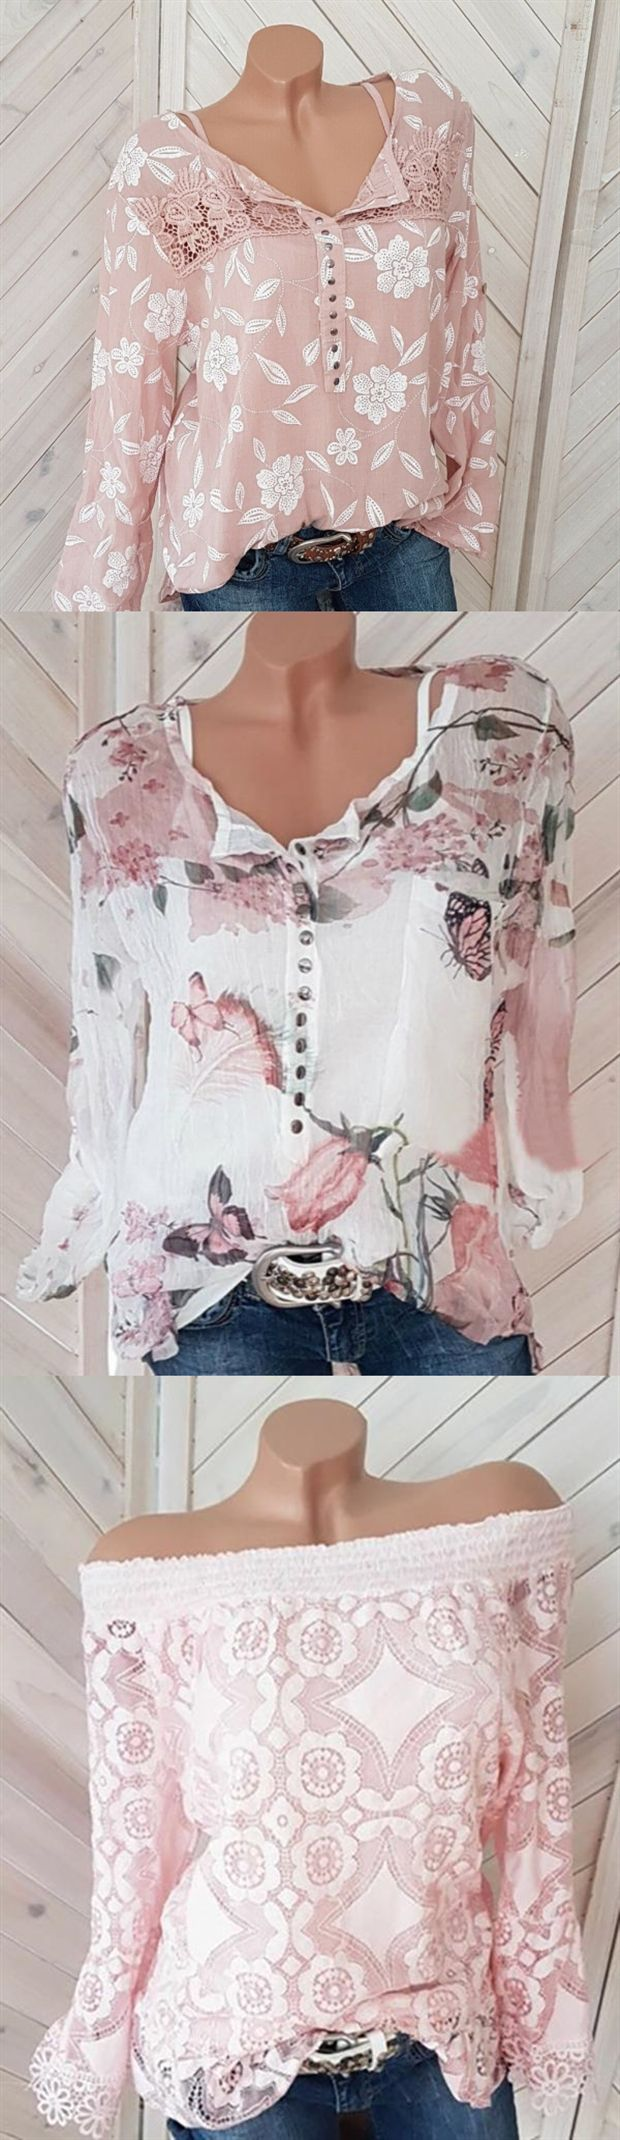 Hot Selling ! 100+ Fashion Spring Long Sleeve Blouses & Shirts❤ Buy More and Save More >> SHOP NOW 1